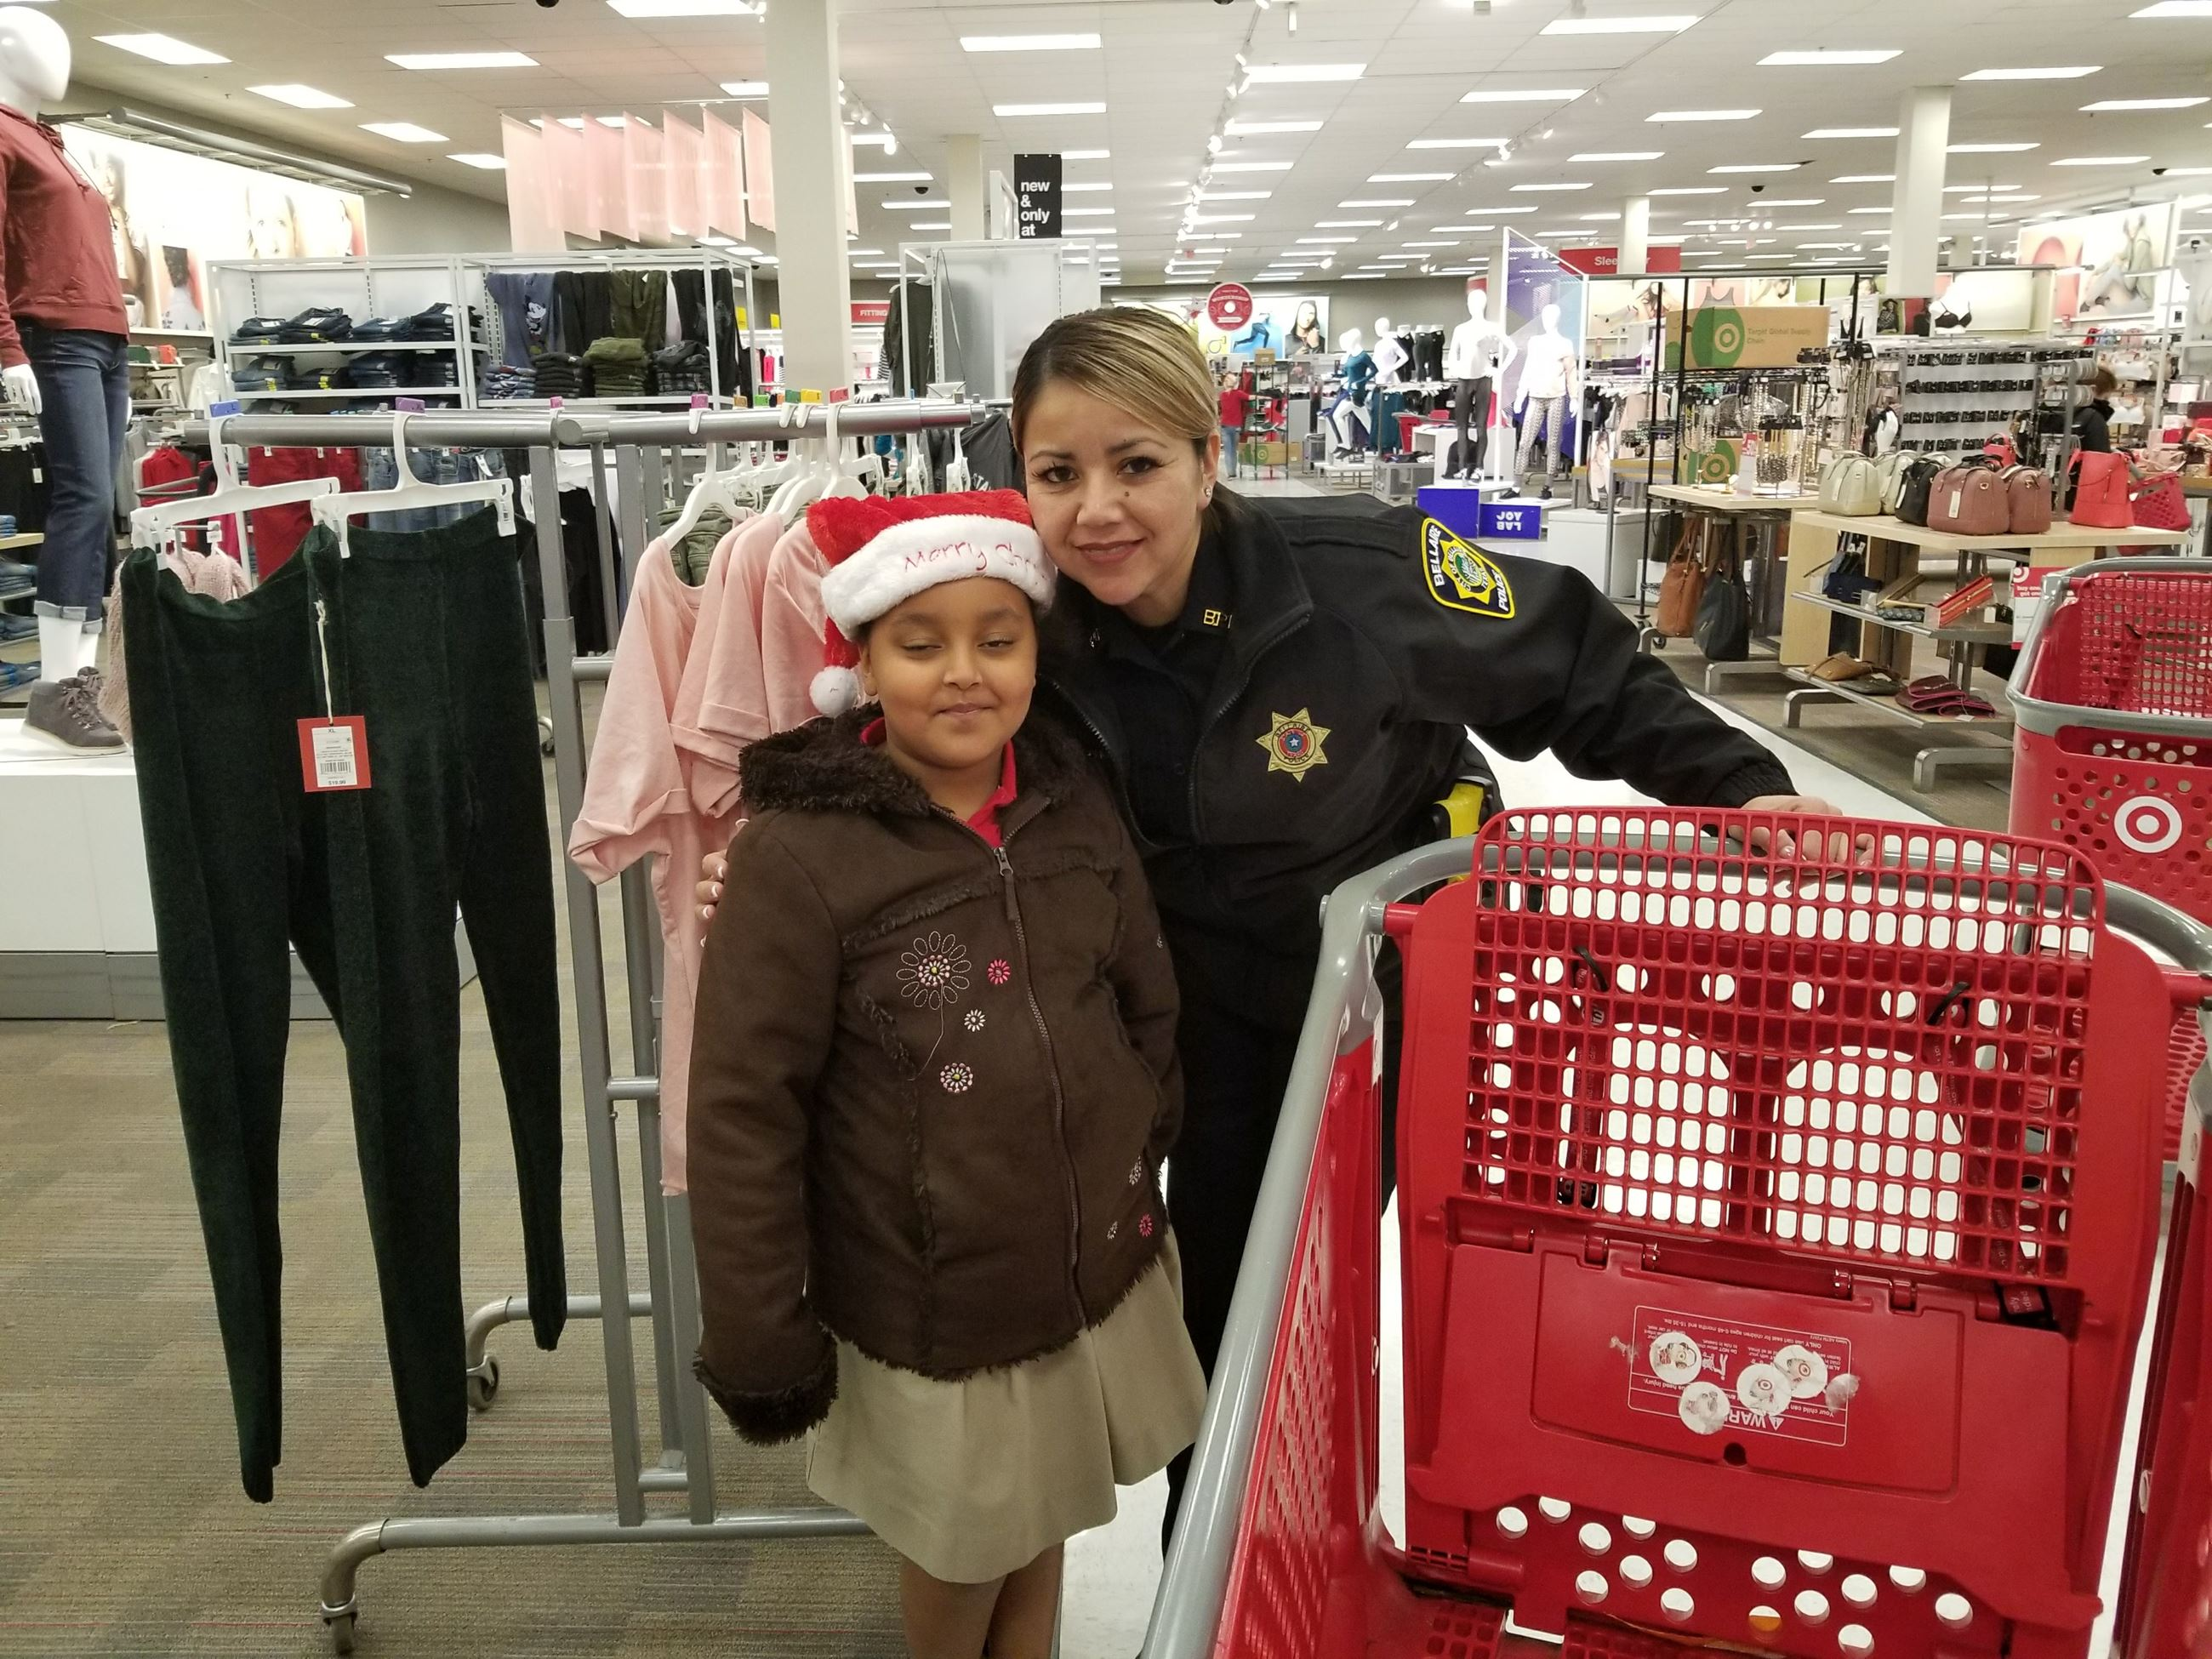 Girl and Officer stand together in clothing department